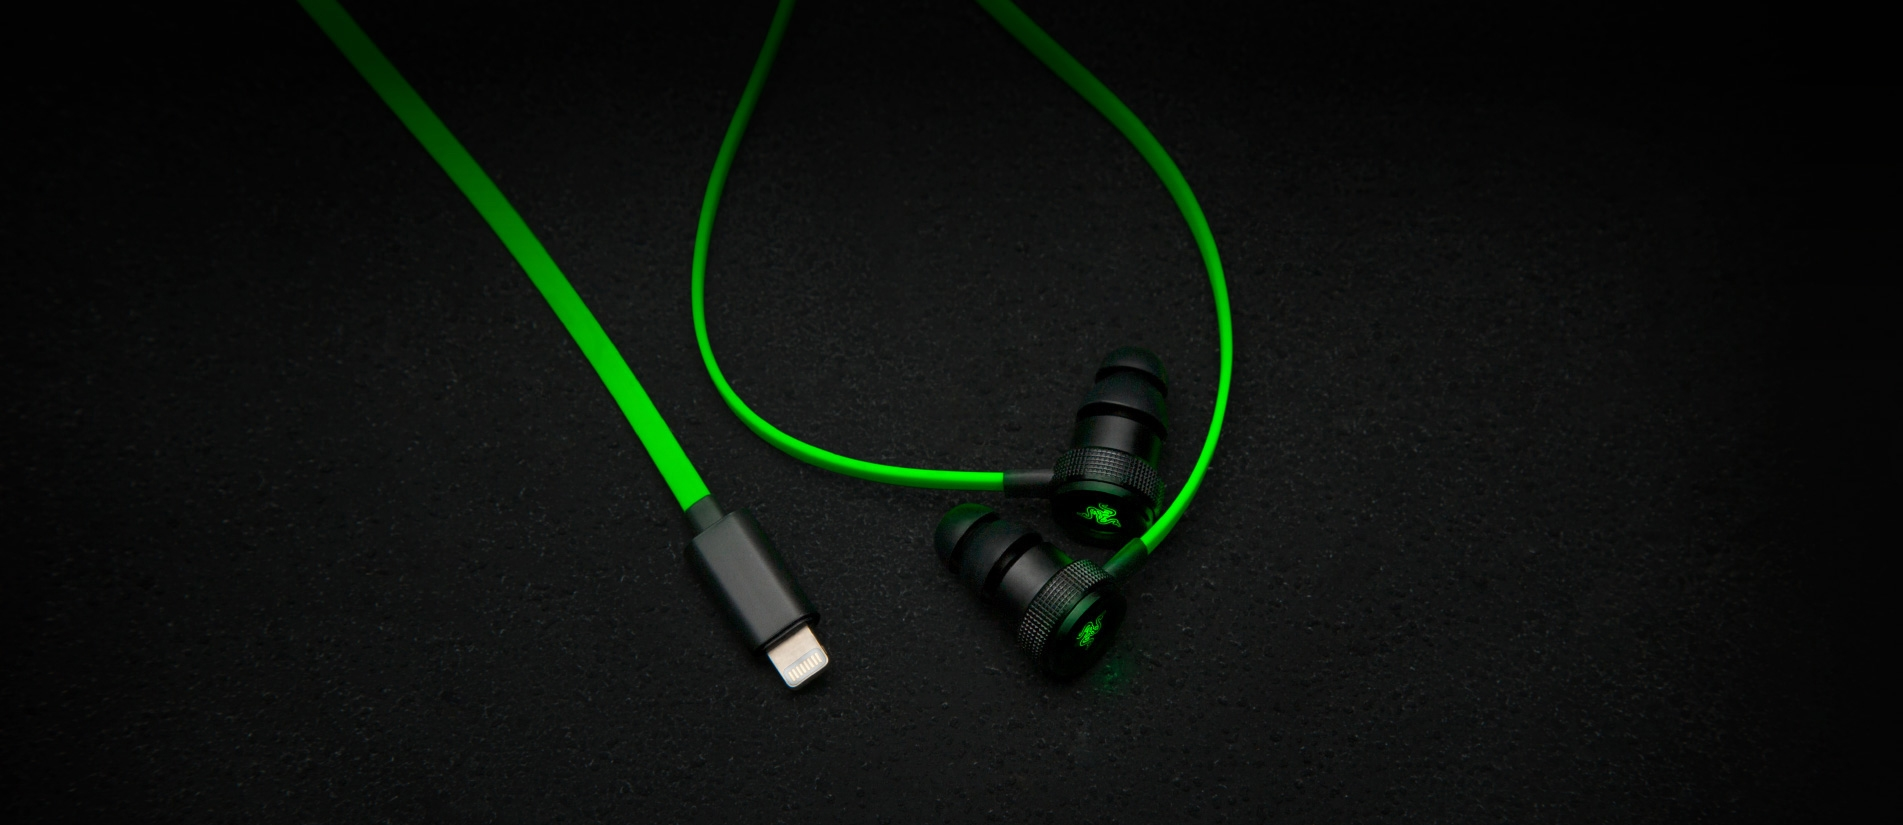 Razer Hammerhead In Ear Headset For Ios Rz04 02090100 Centre Com V2 The Delivers Pure Audio Fidelity Thanks To Extra Large 10 Mm Dynamic Drivers And A Custom Tuned Digital Analog Dac Converter